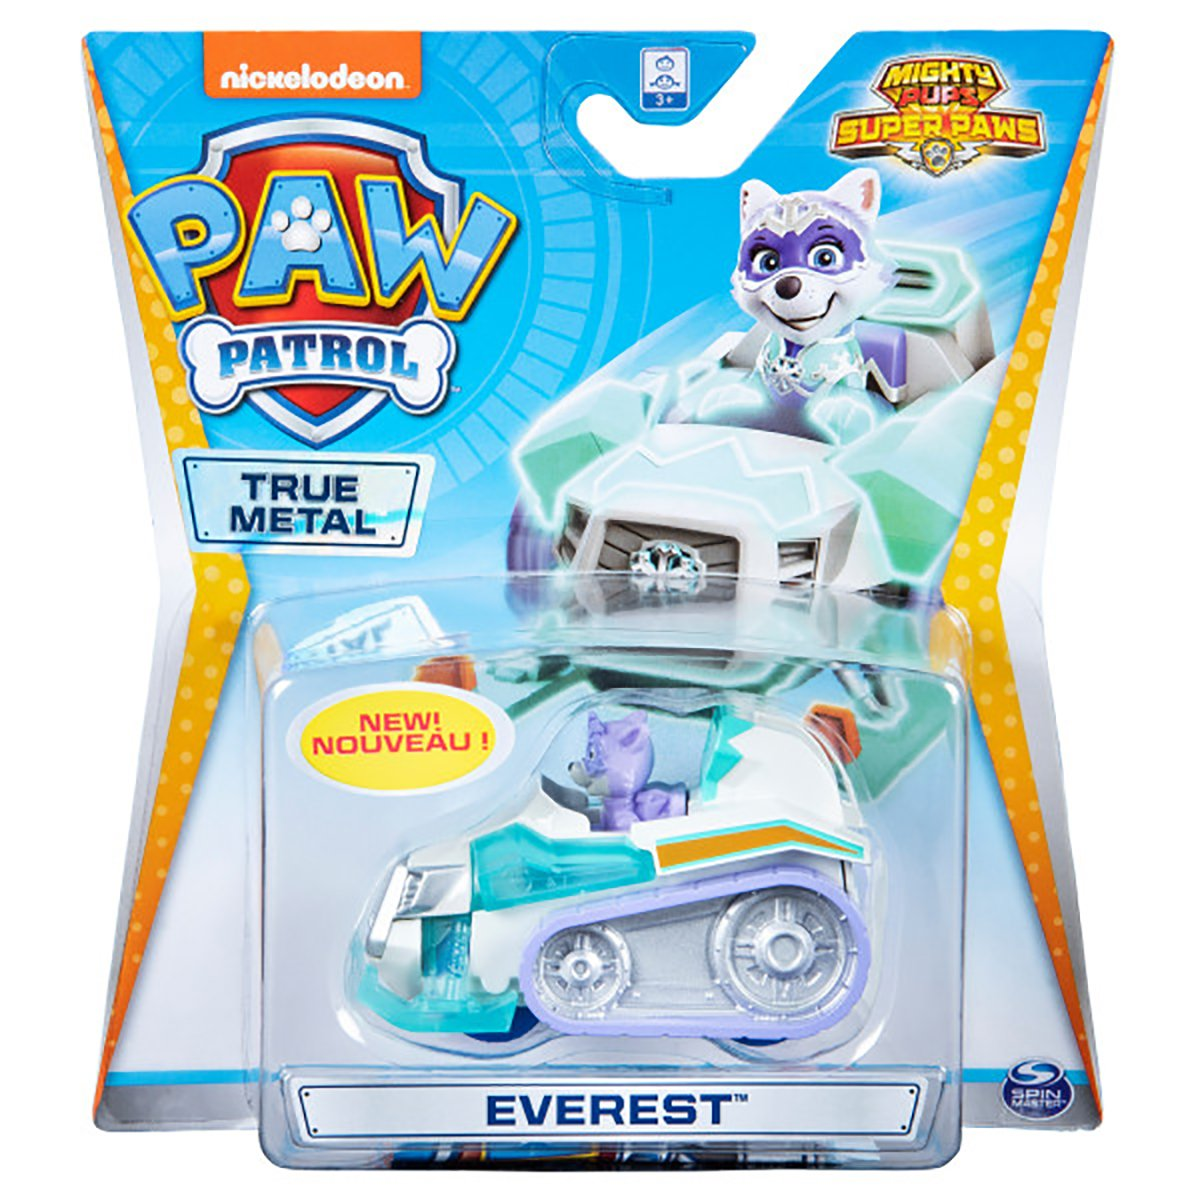 Masinuta cu figurina Paw Patrol True Metal, Everest 20127219